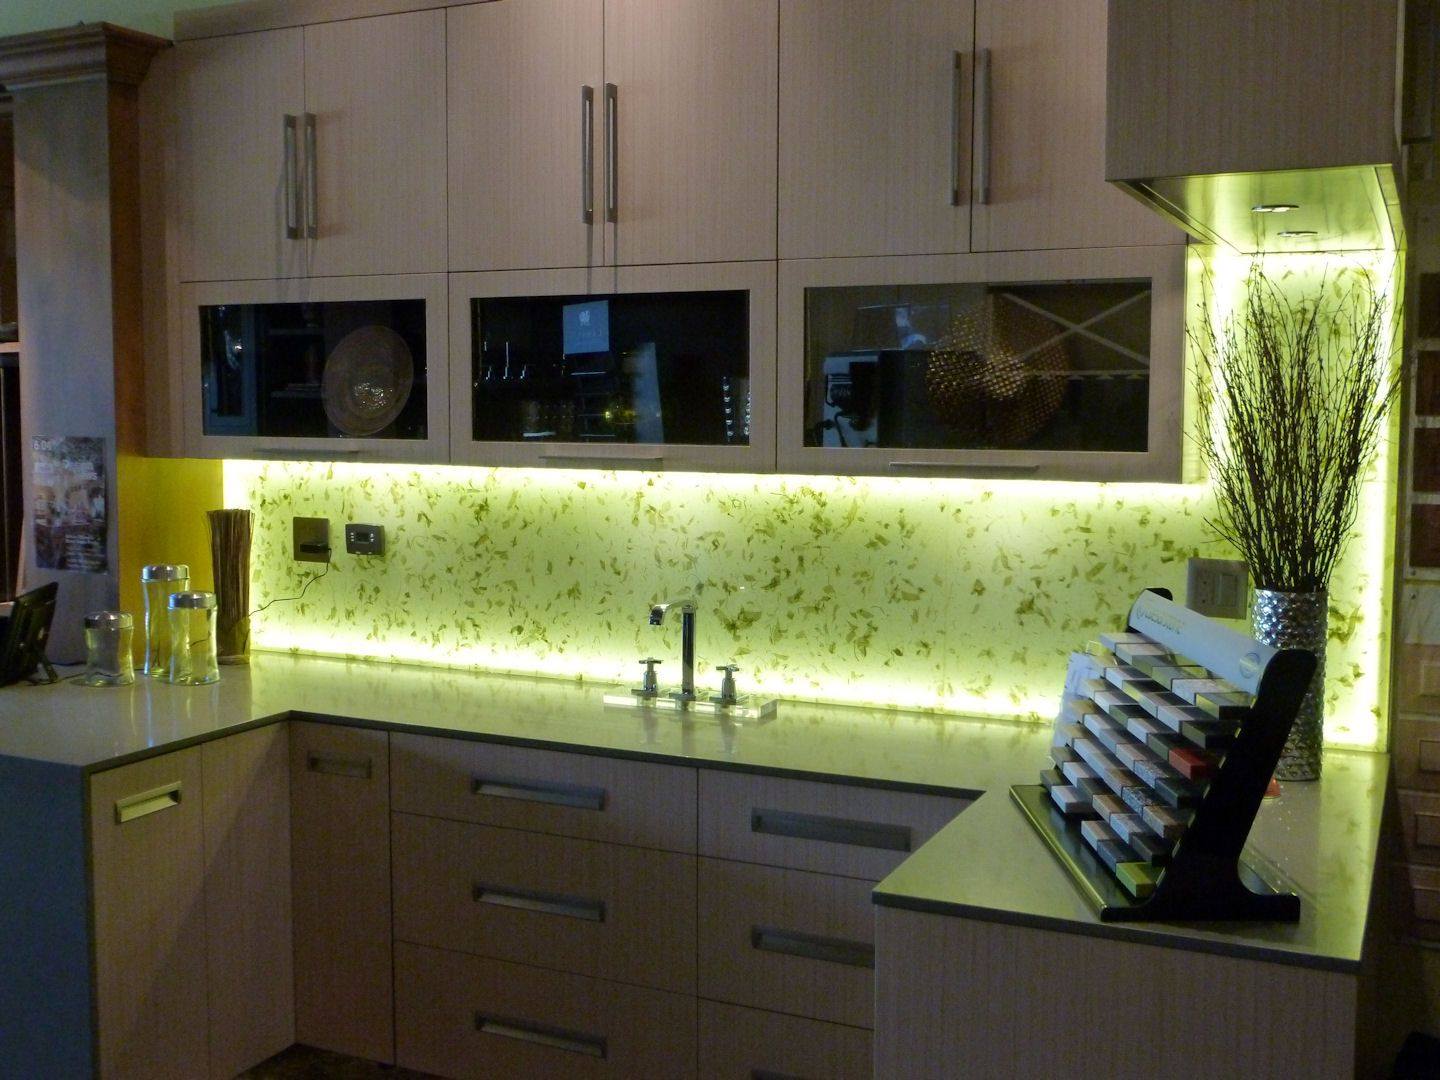 Rice paper is laminated between two glass panels and back lit with led lighting for this kitchen backsplash